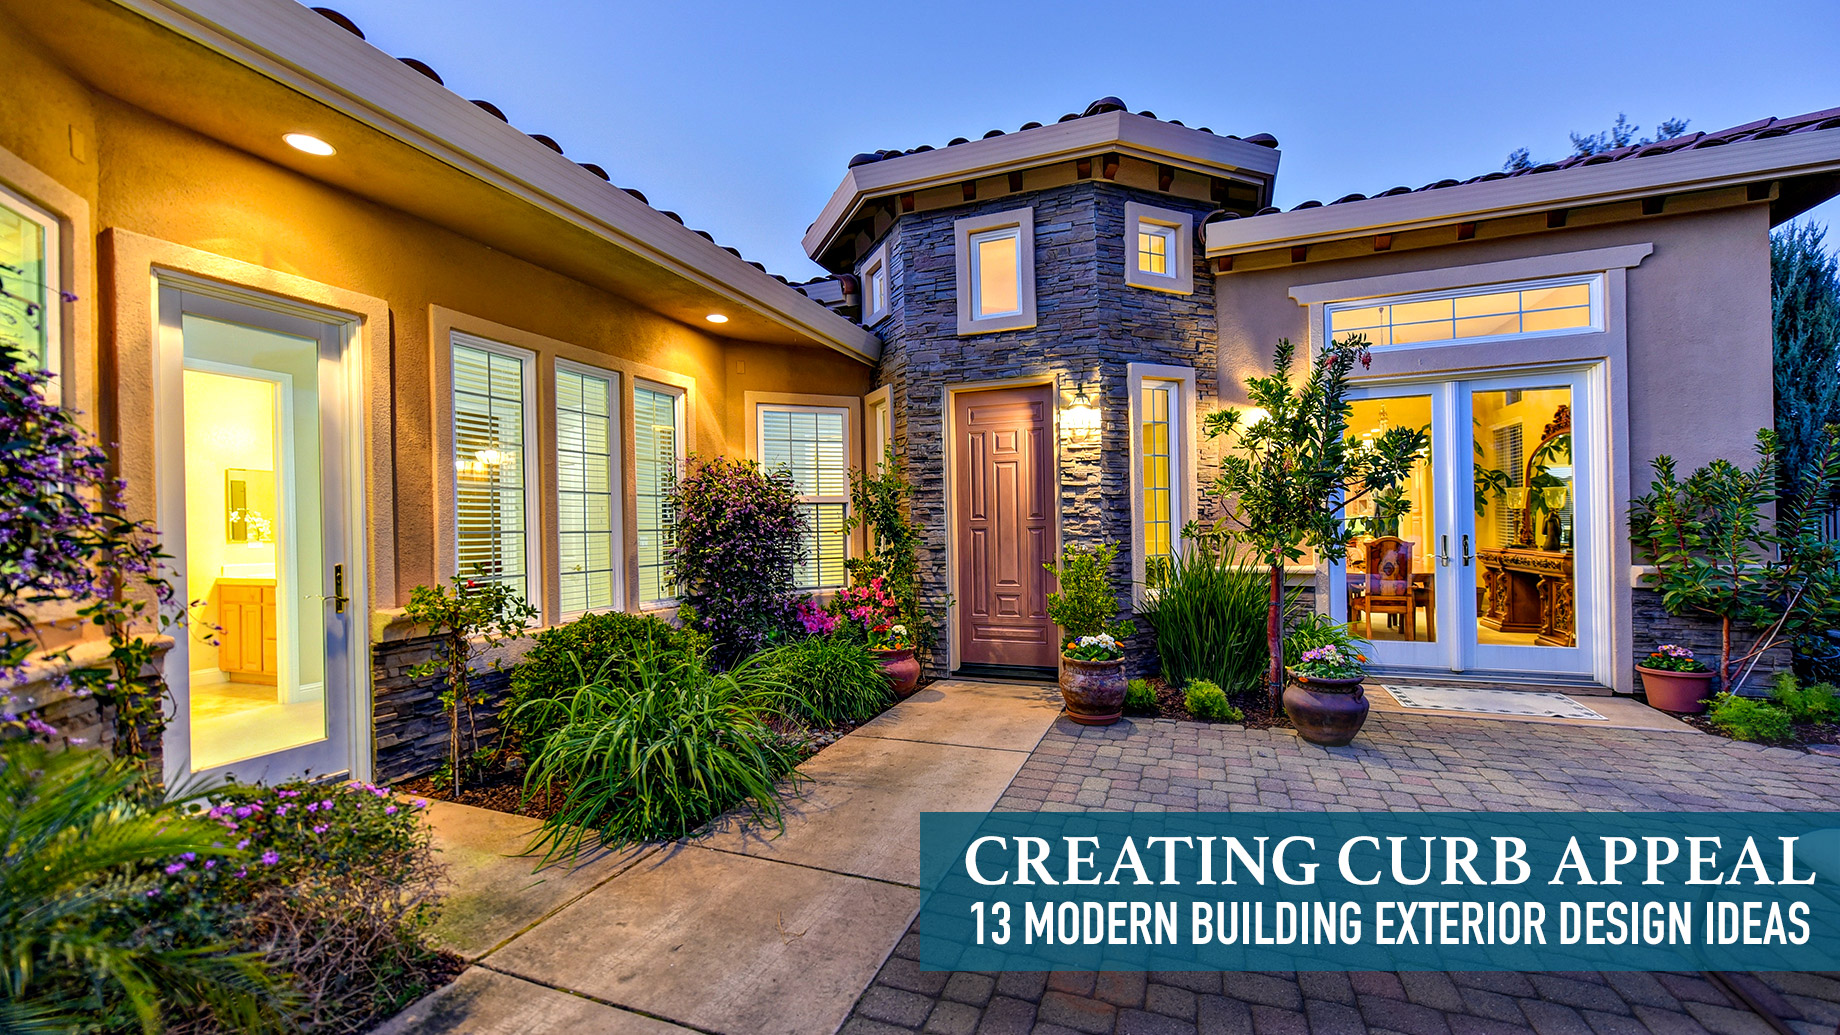 Creating Curb Appeal - 13 Modern Building Exterior Design Ideas